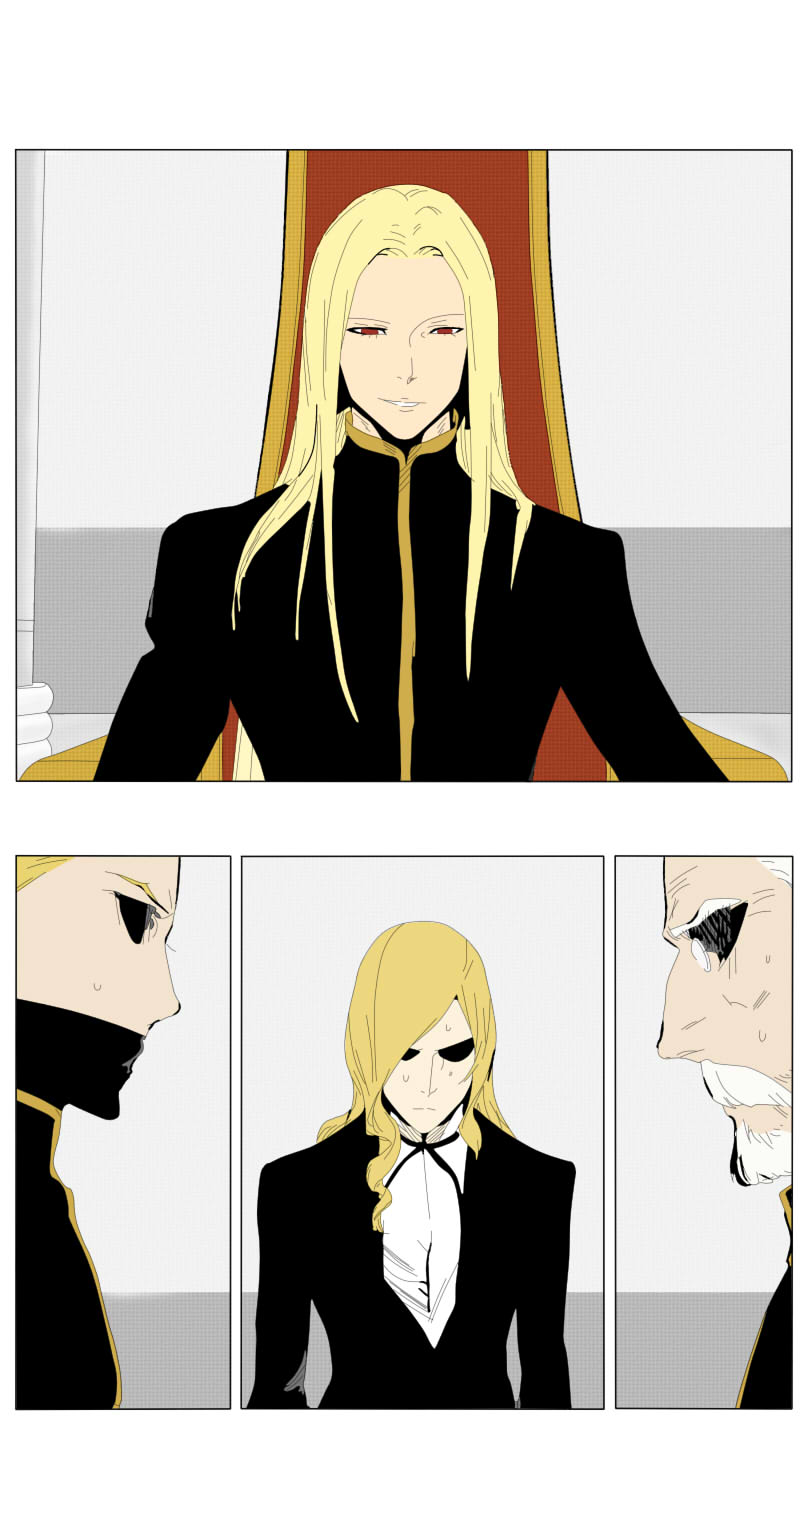 Noblesse ch287 p021 FULL PAGE!!!~~! 02 by Fallen0245